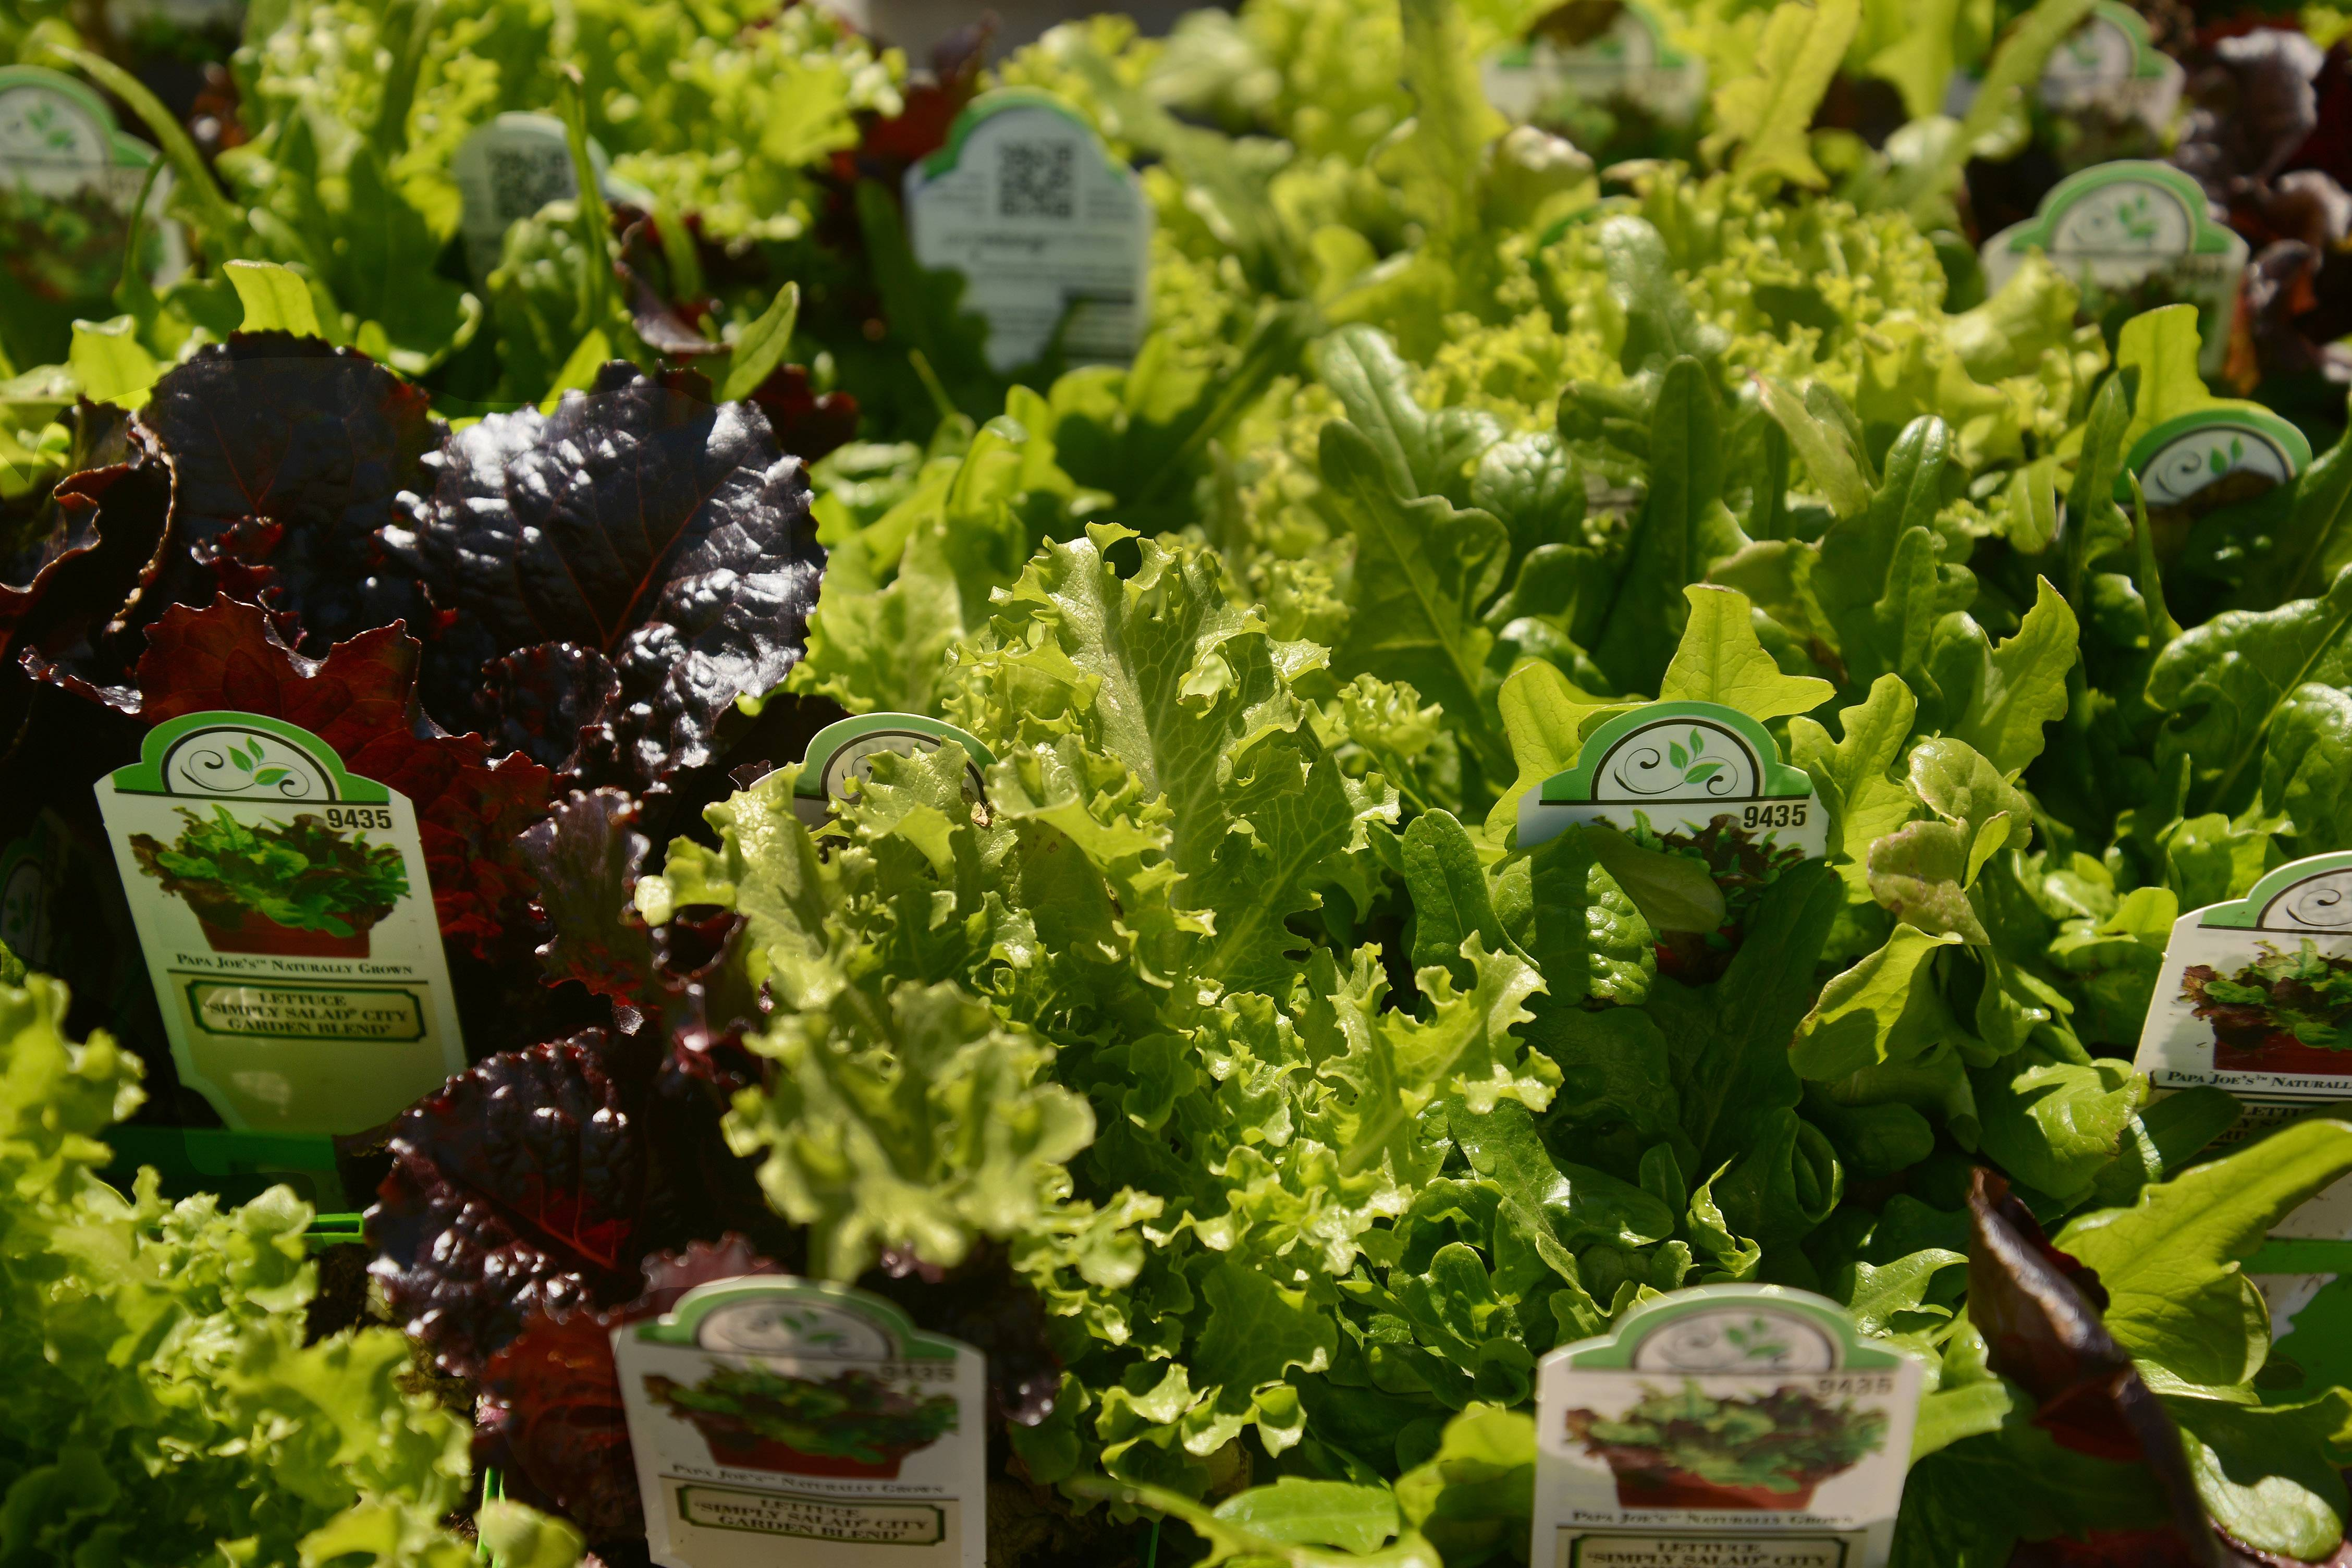 Lettuces, shown here at Lurvey's Garden Center in Des Plaines, are an example of a cool-season crop that can handle the cold nights. They can be planted now for a June harvest and again in late August for a fall harvest.